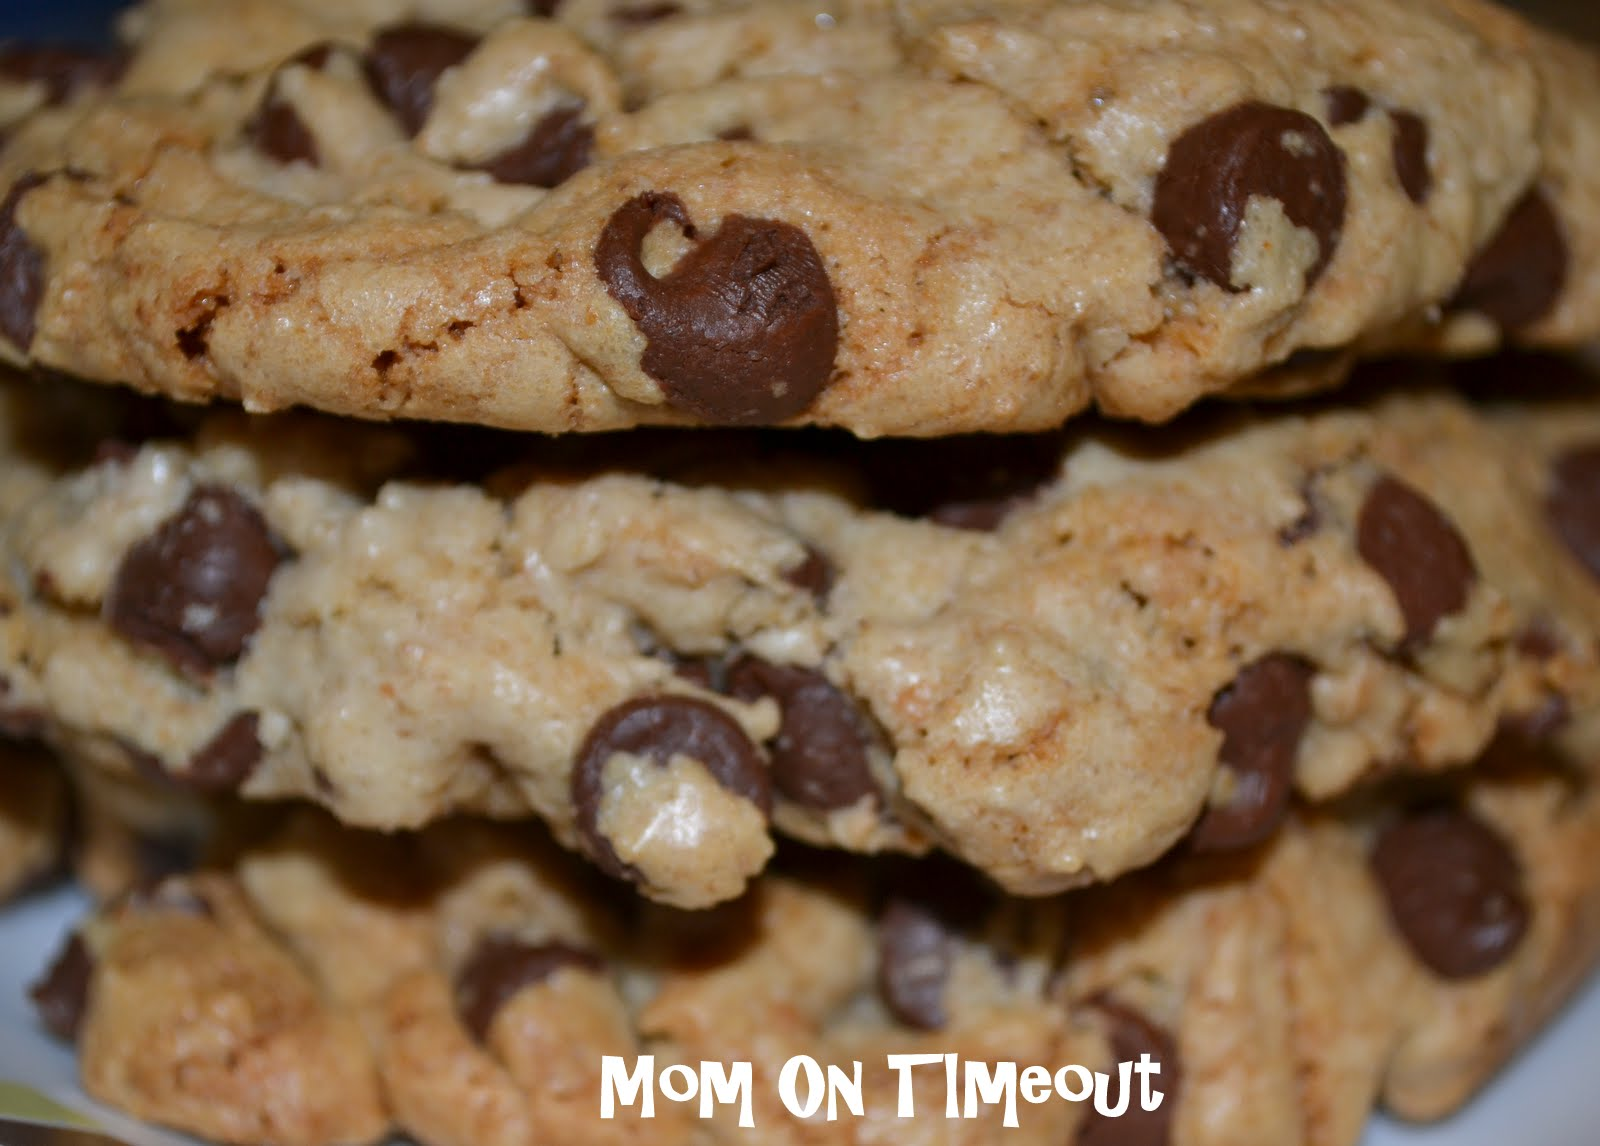 Giant Chewy Chocolate Chip Cookies - Mom On Timeout